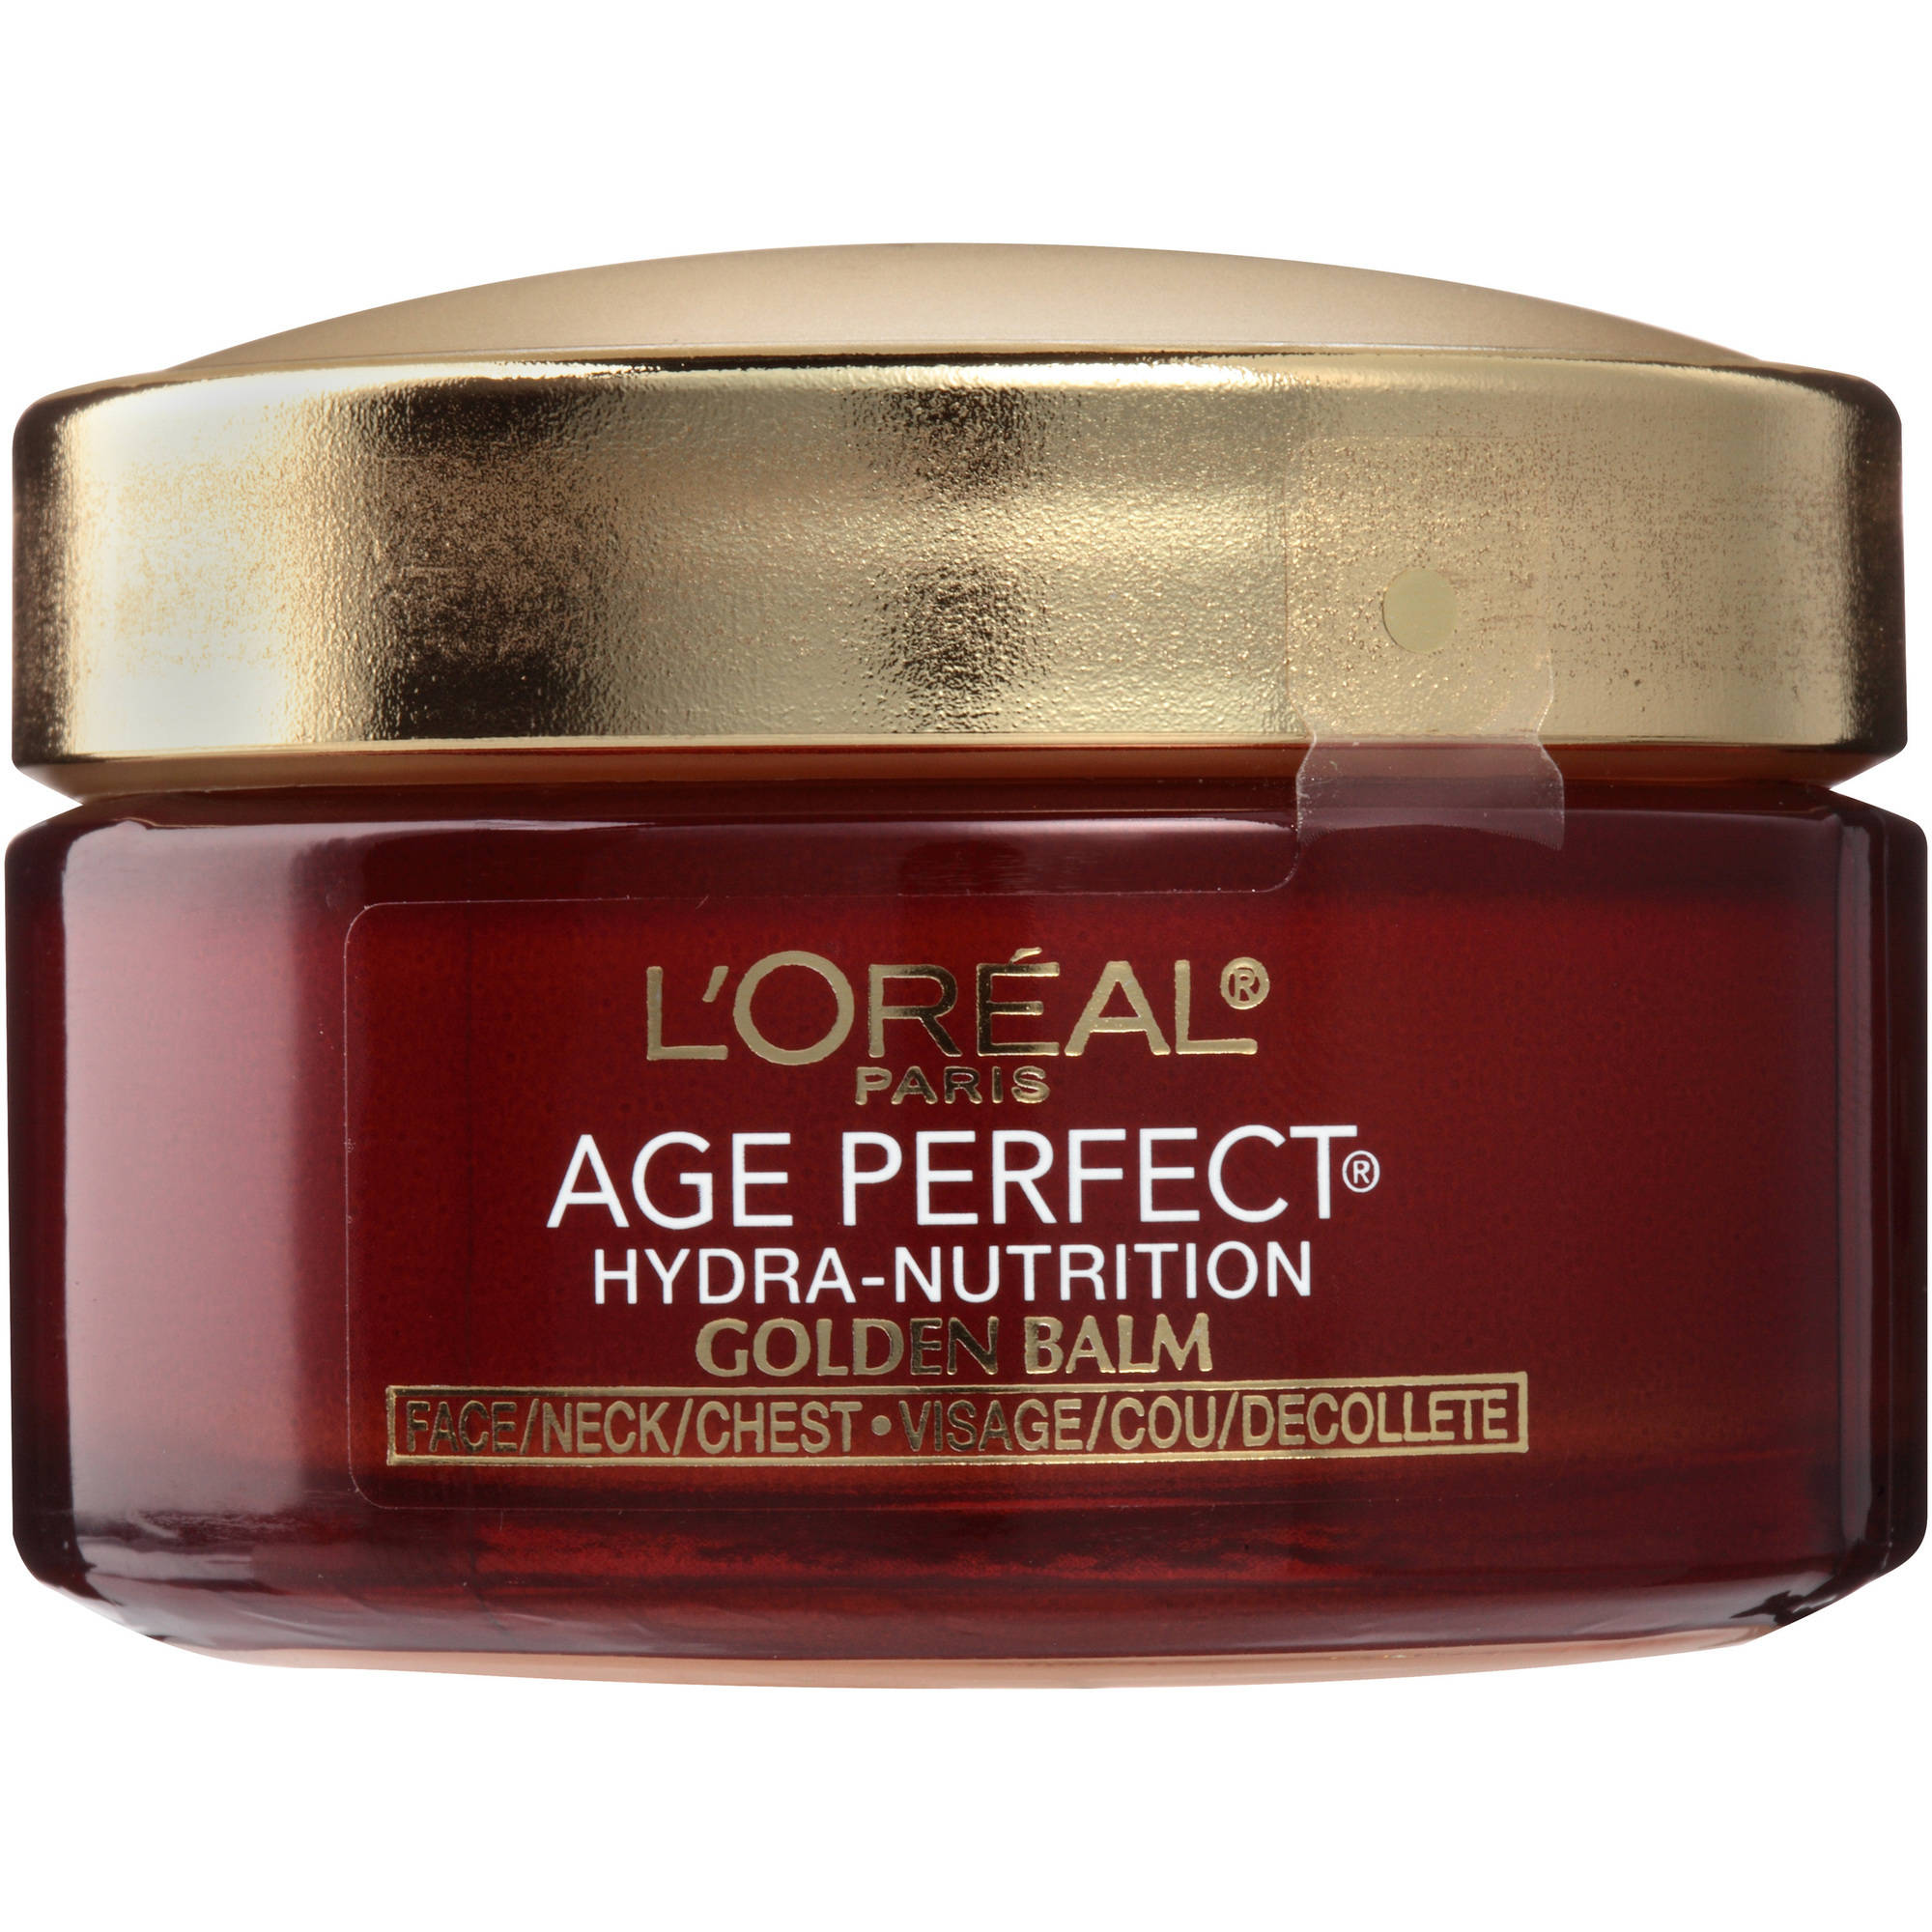 L'Oreal Paris Age Perfect Hydra-Nutrition Golden Balm Face, Neck & Chest Moisturizer, 1.7 oz